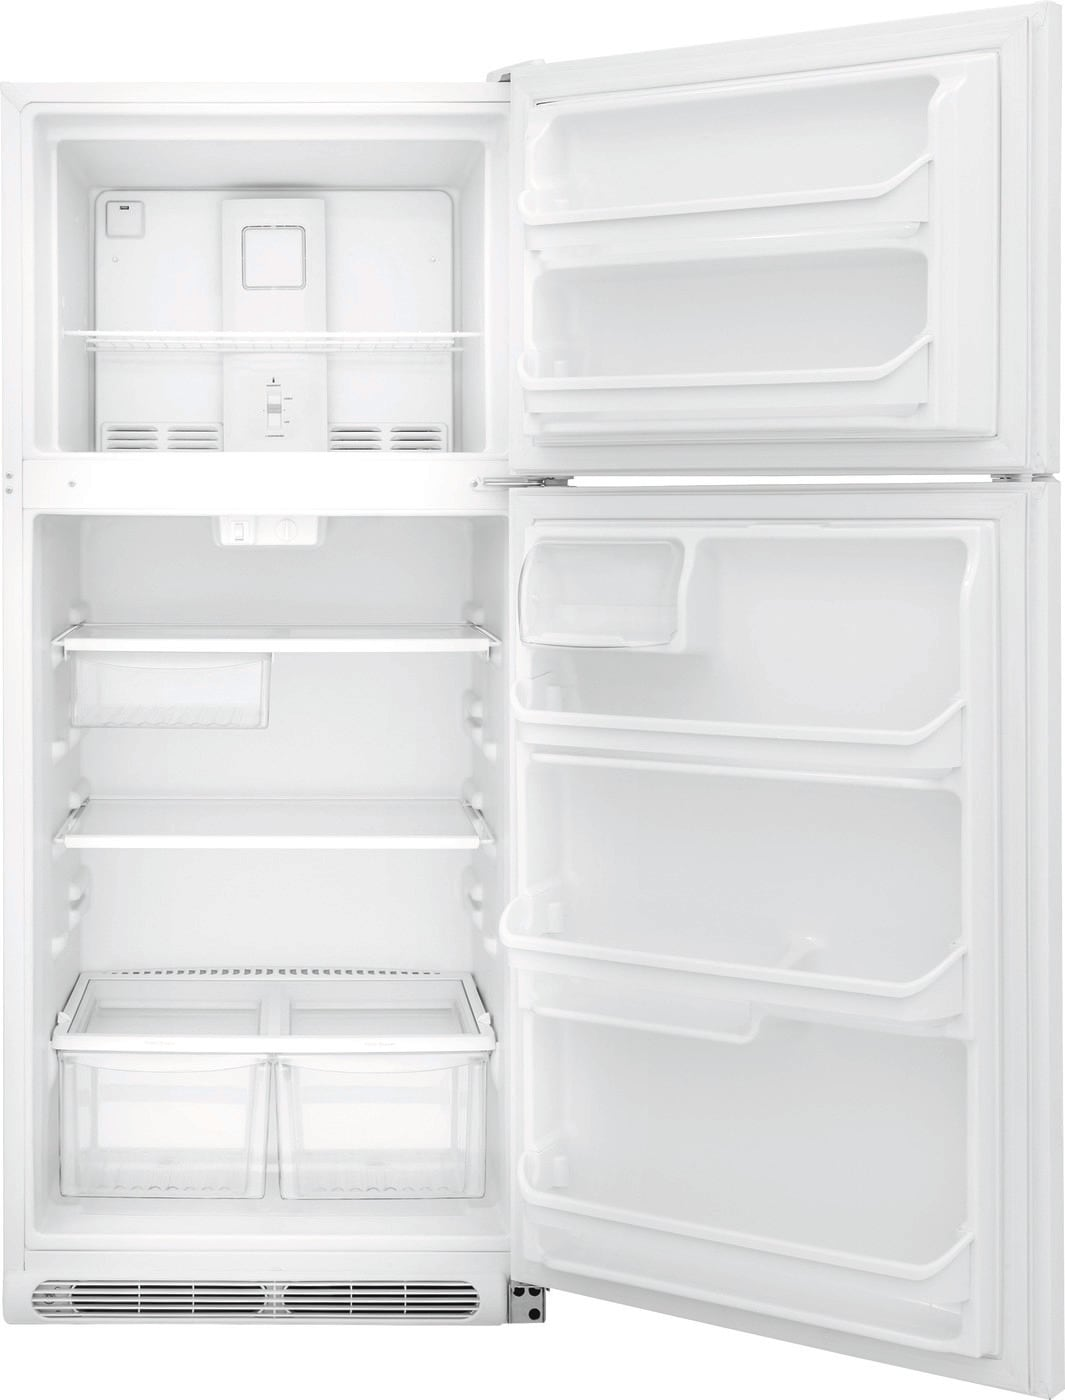 20.4 Cu. Ft. Top Freezer Refrigerator White FFTR2021TW